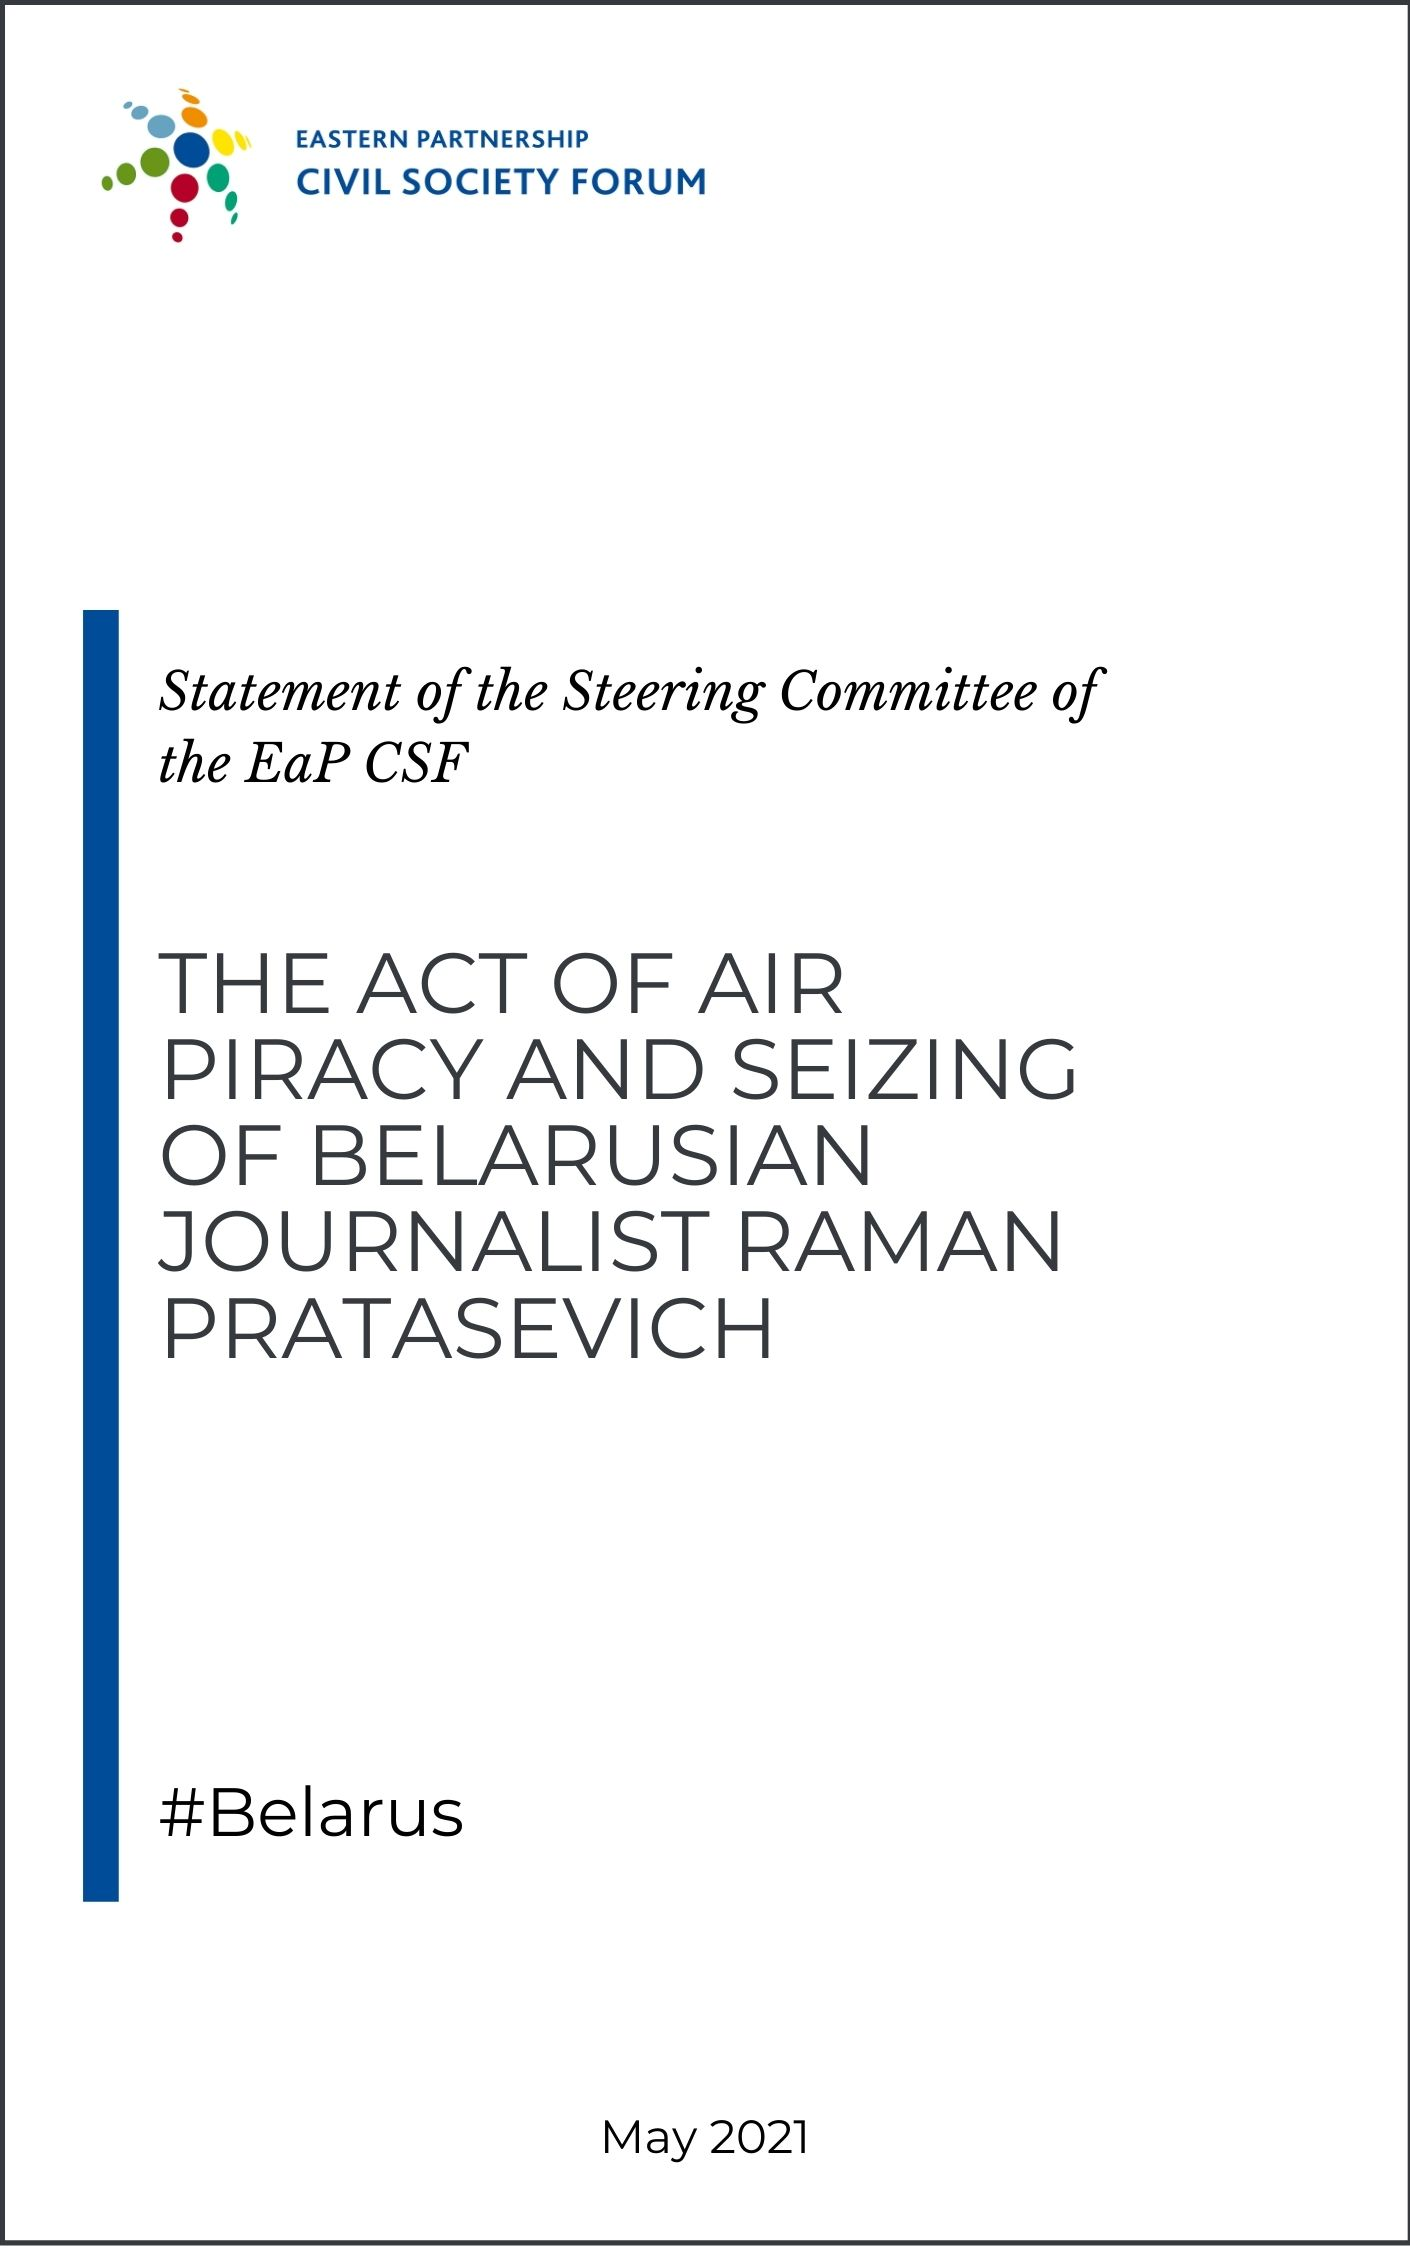 Statement on the act of air piracy and seizing of Belarusian journalist Raman Pratasevich